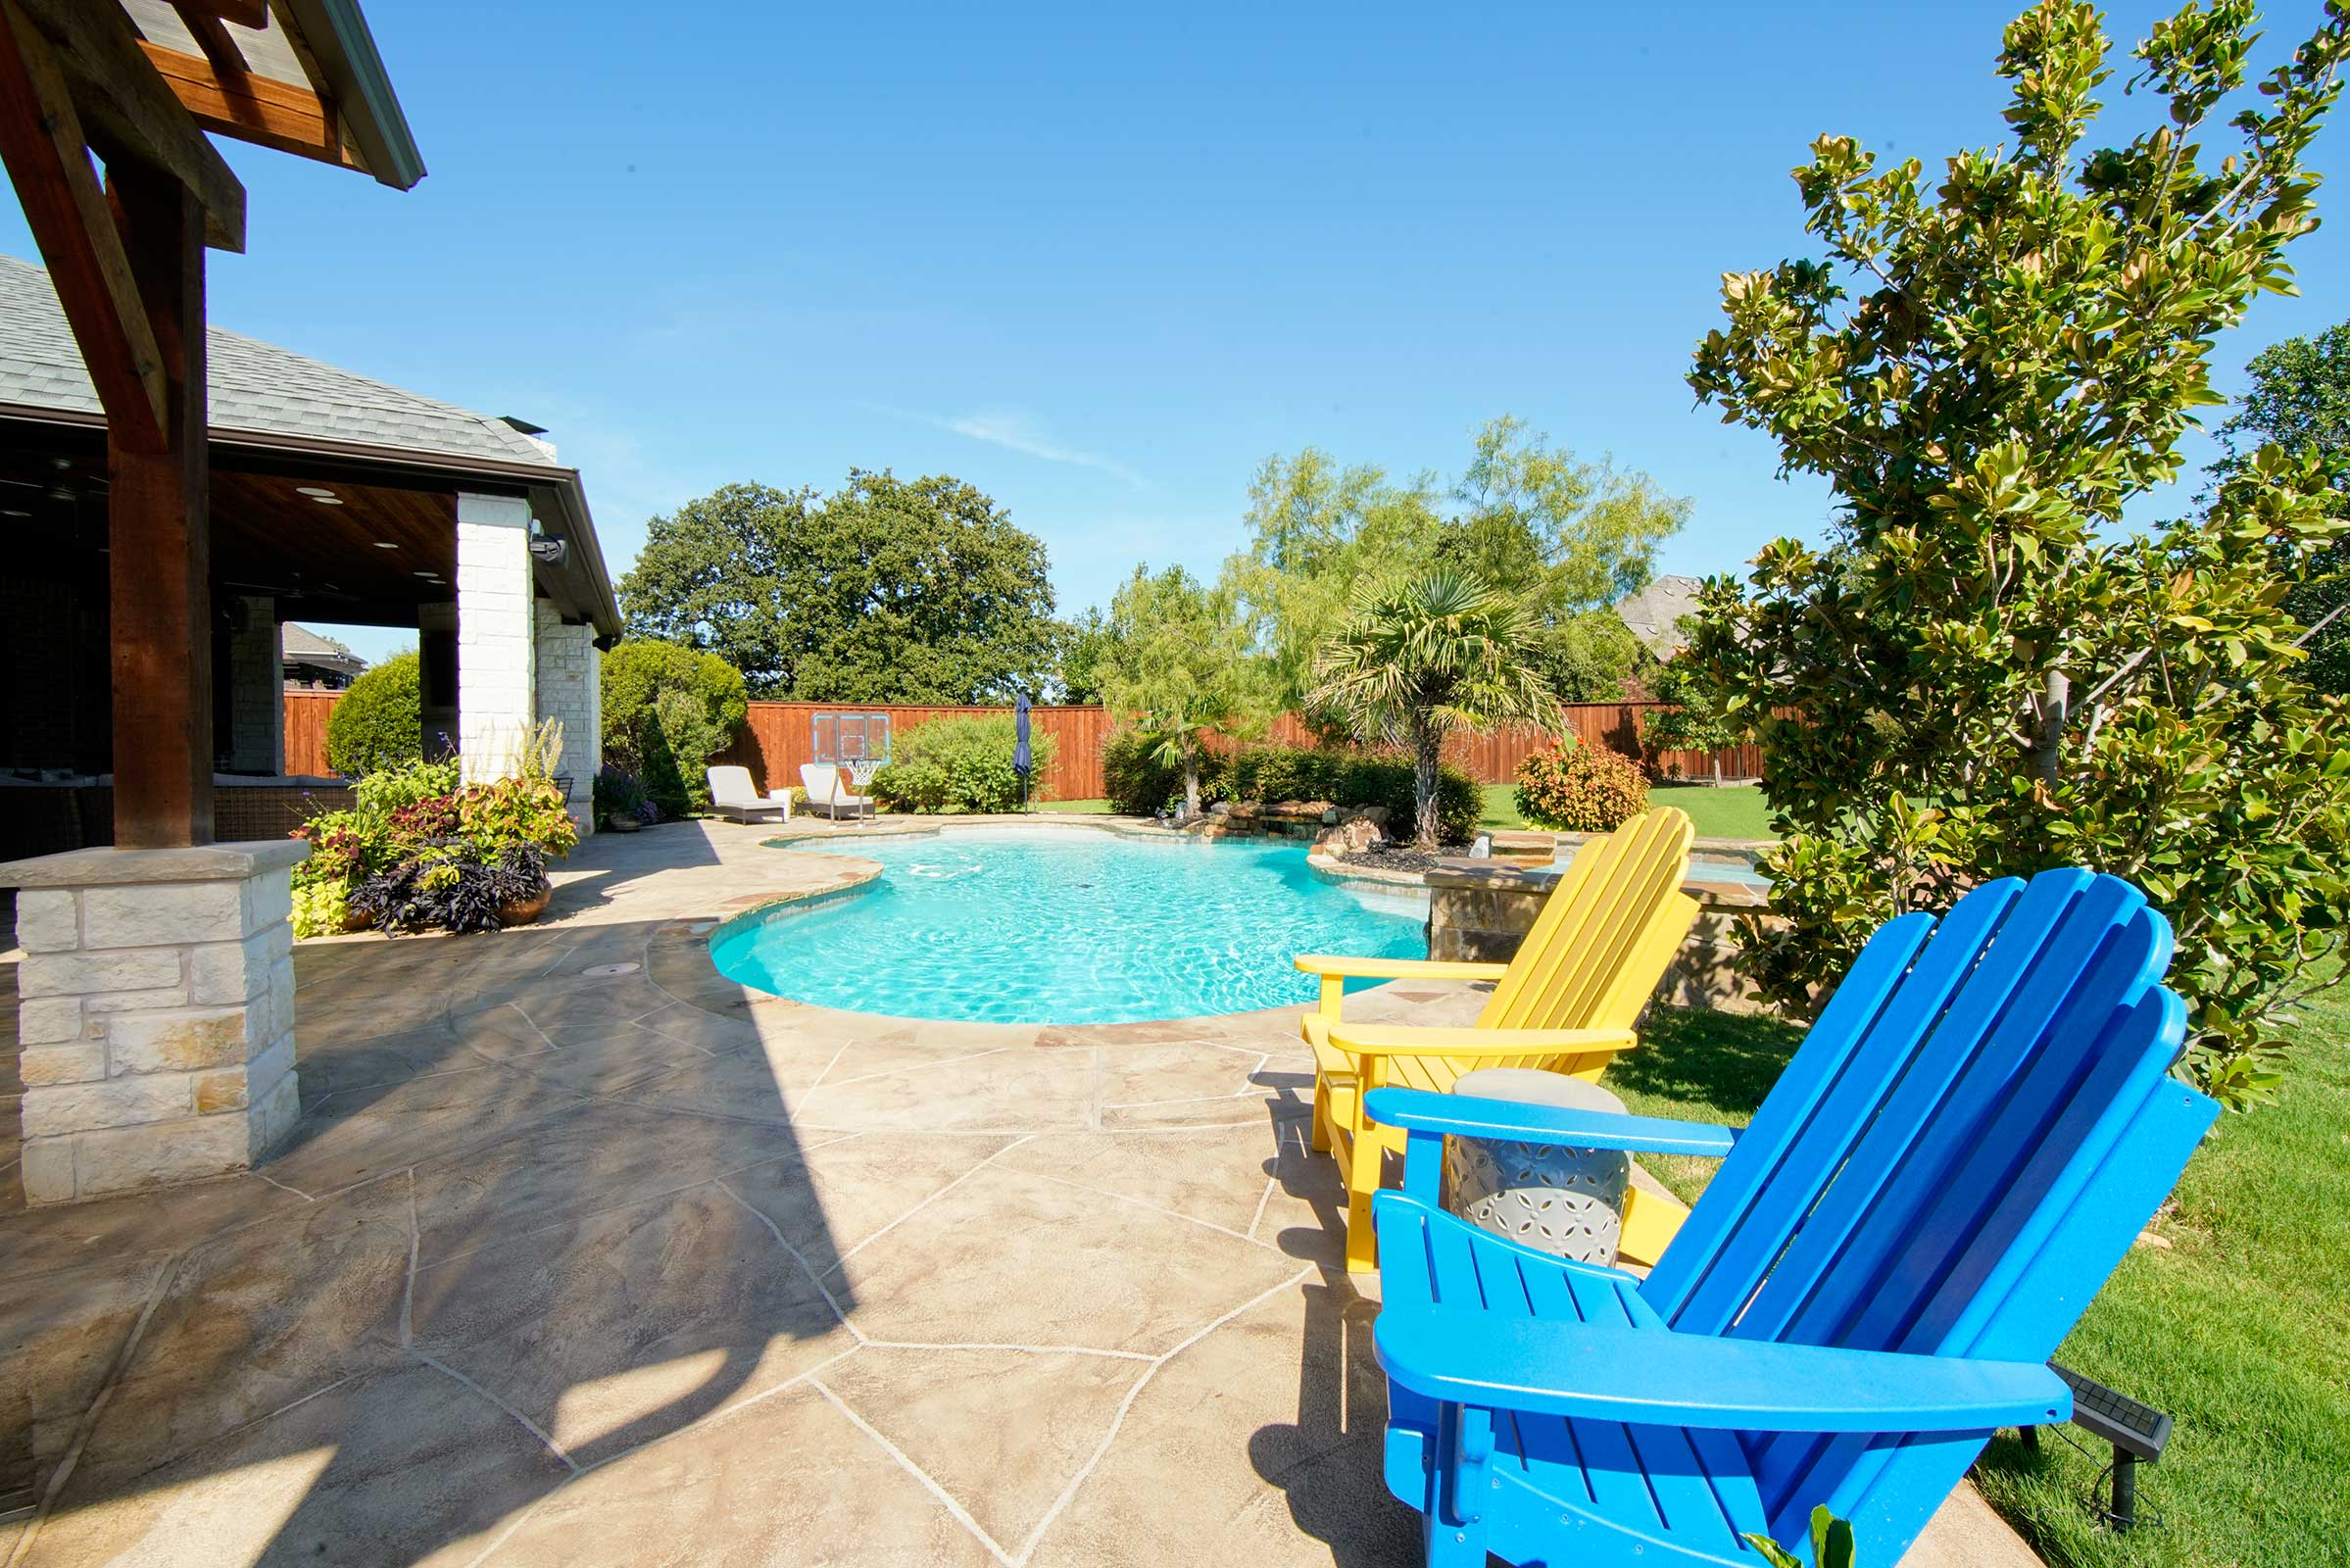 Outdoor Kitchens, Patio Covers | Fort Worth, Burleson TX ... on Dfw Complete Outdoor Living id=82030